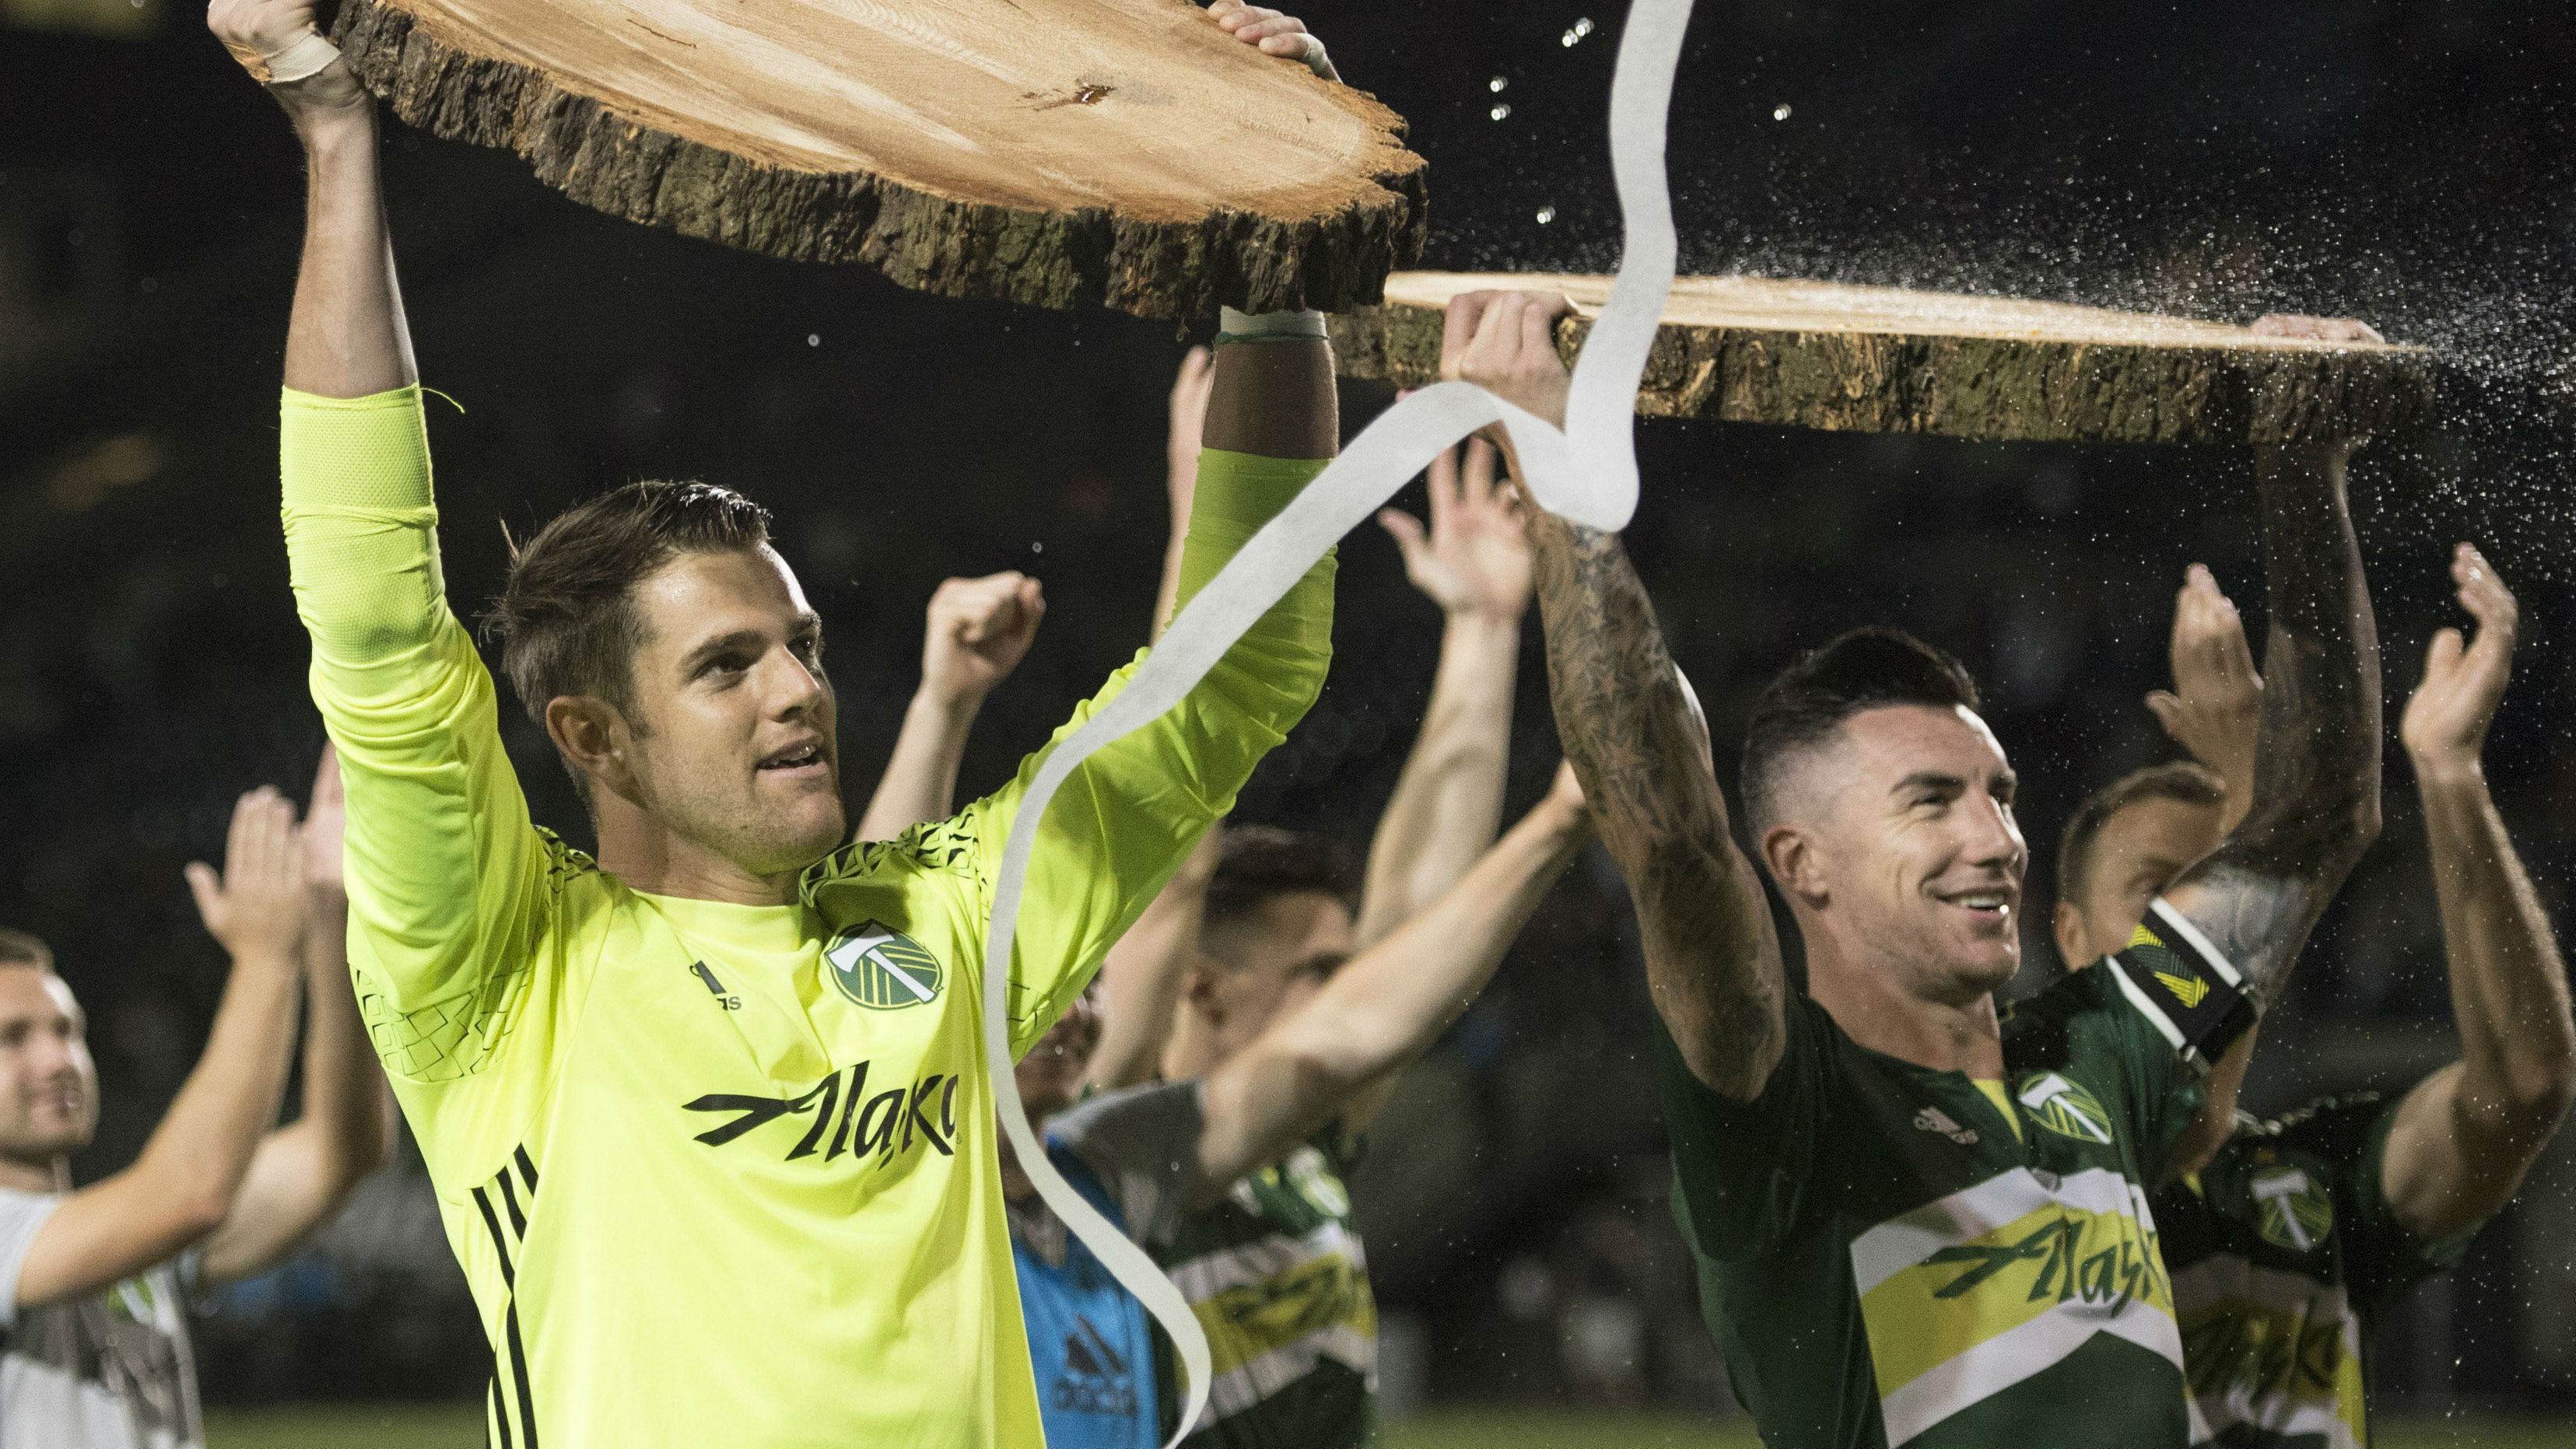 Timbers players Ridgewell, Gleeson arrested for DUI